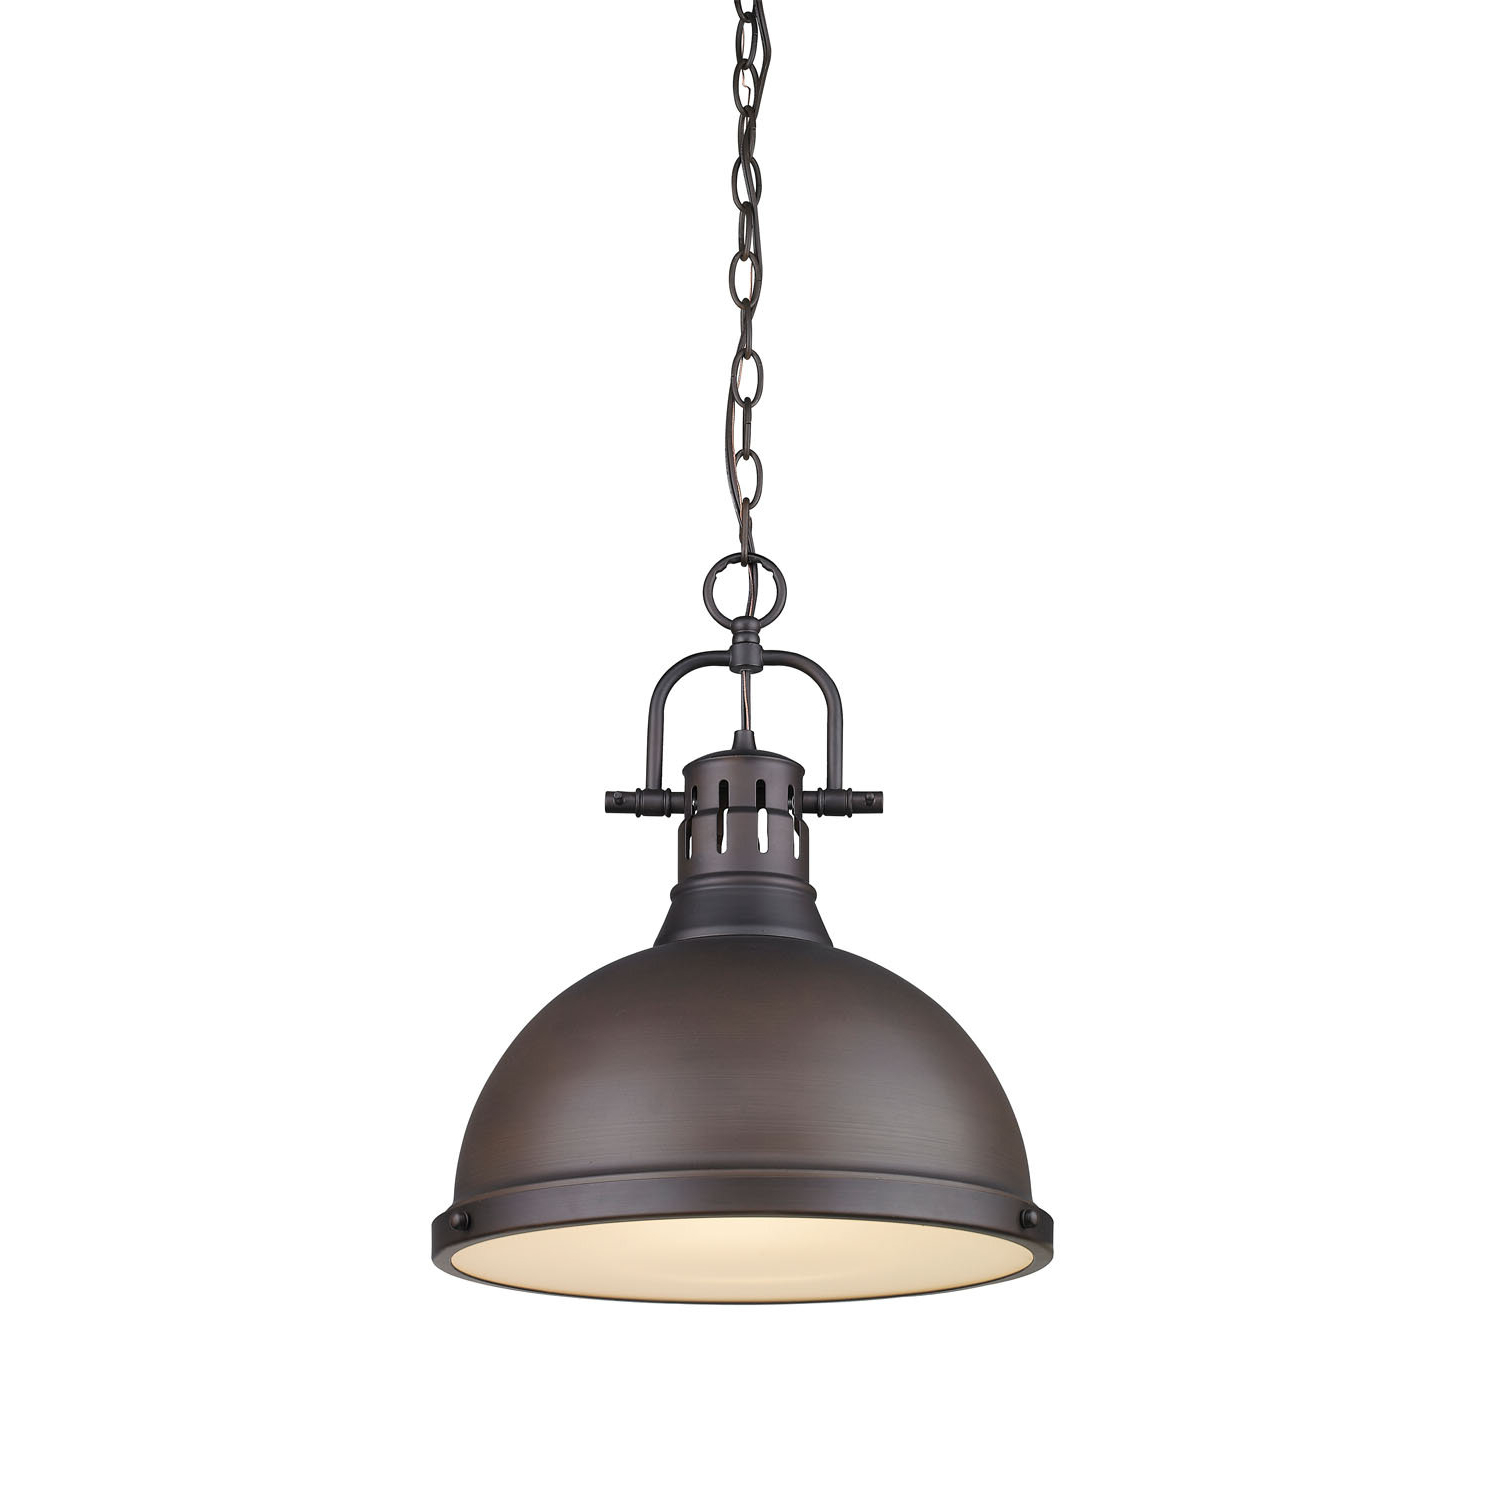 Most Recently Released Bodalla 1 Light Single Dome Pendant Inside Bodalla 1 Light Single Bell Pendants (View 14 of 20)